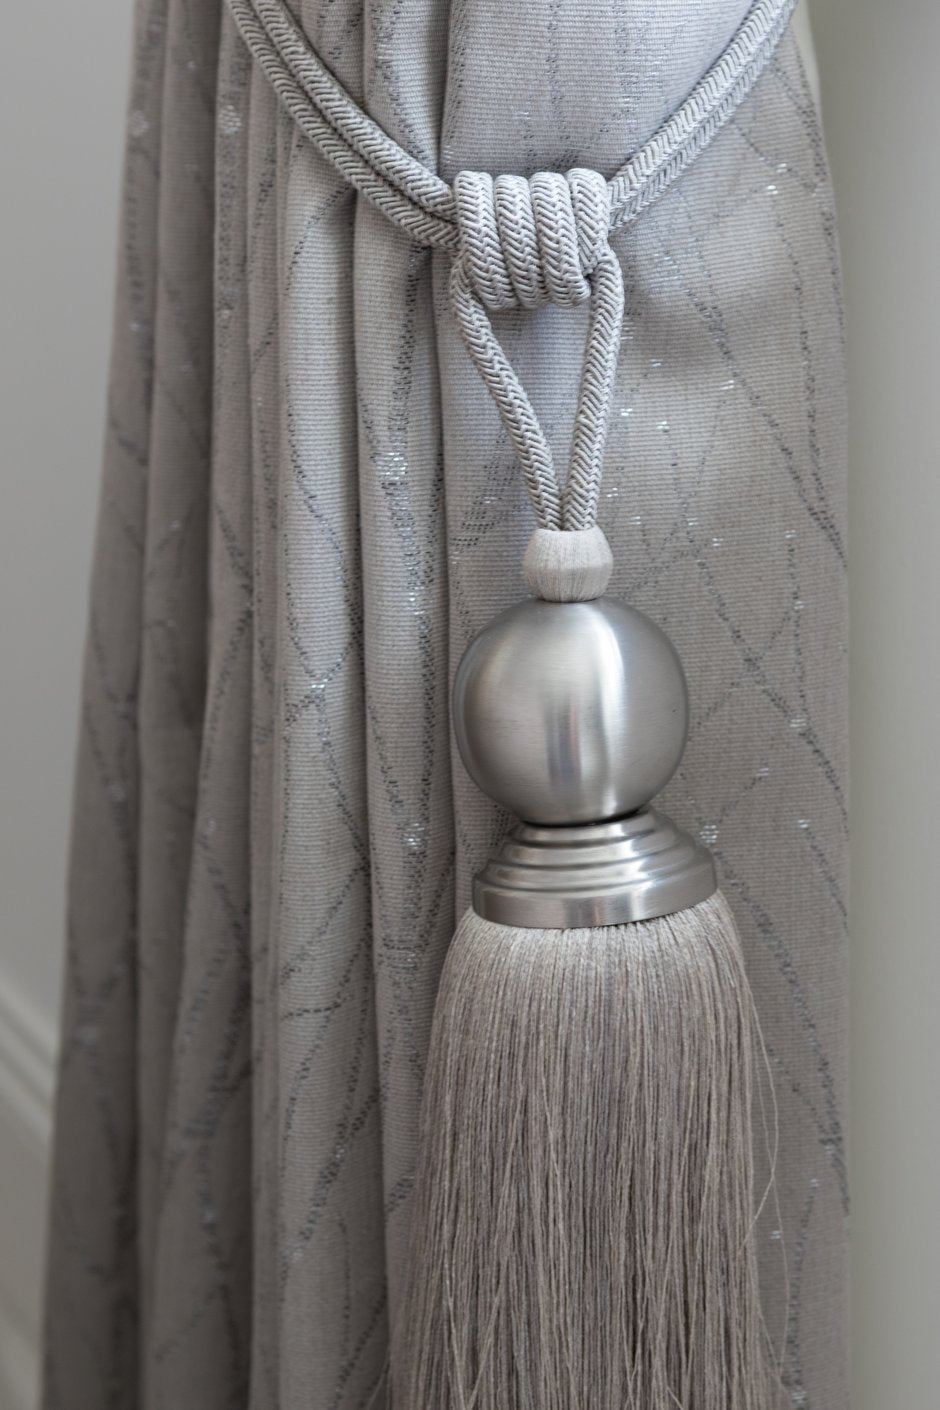 http://www.emblem-interiors.com/collections/curtains/products/curtains-1